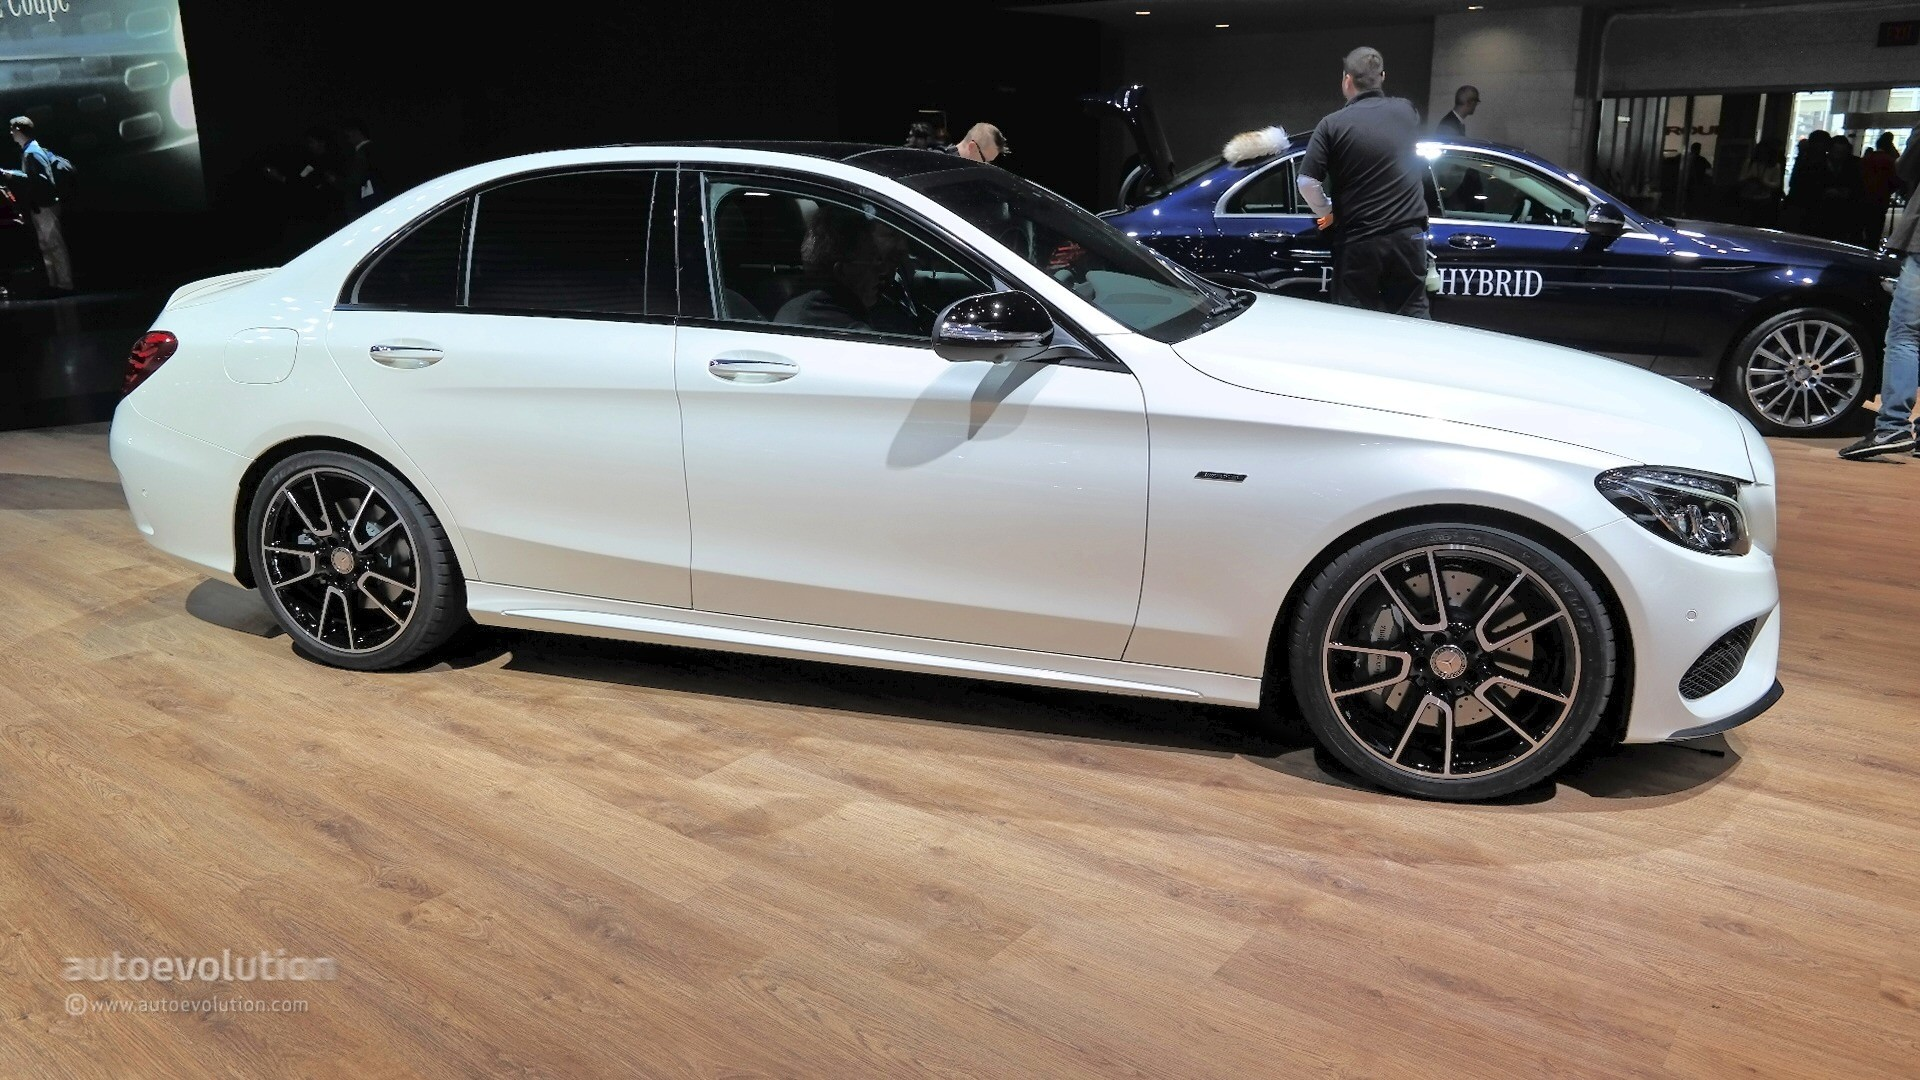 https://s1.cdn.autoevolution.com/images/news/gallery/2016-mercedes-c450-amg-4matic-sedan-finally-arrives-in-the-us-from-50800_29.jpg